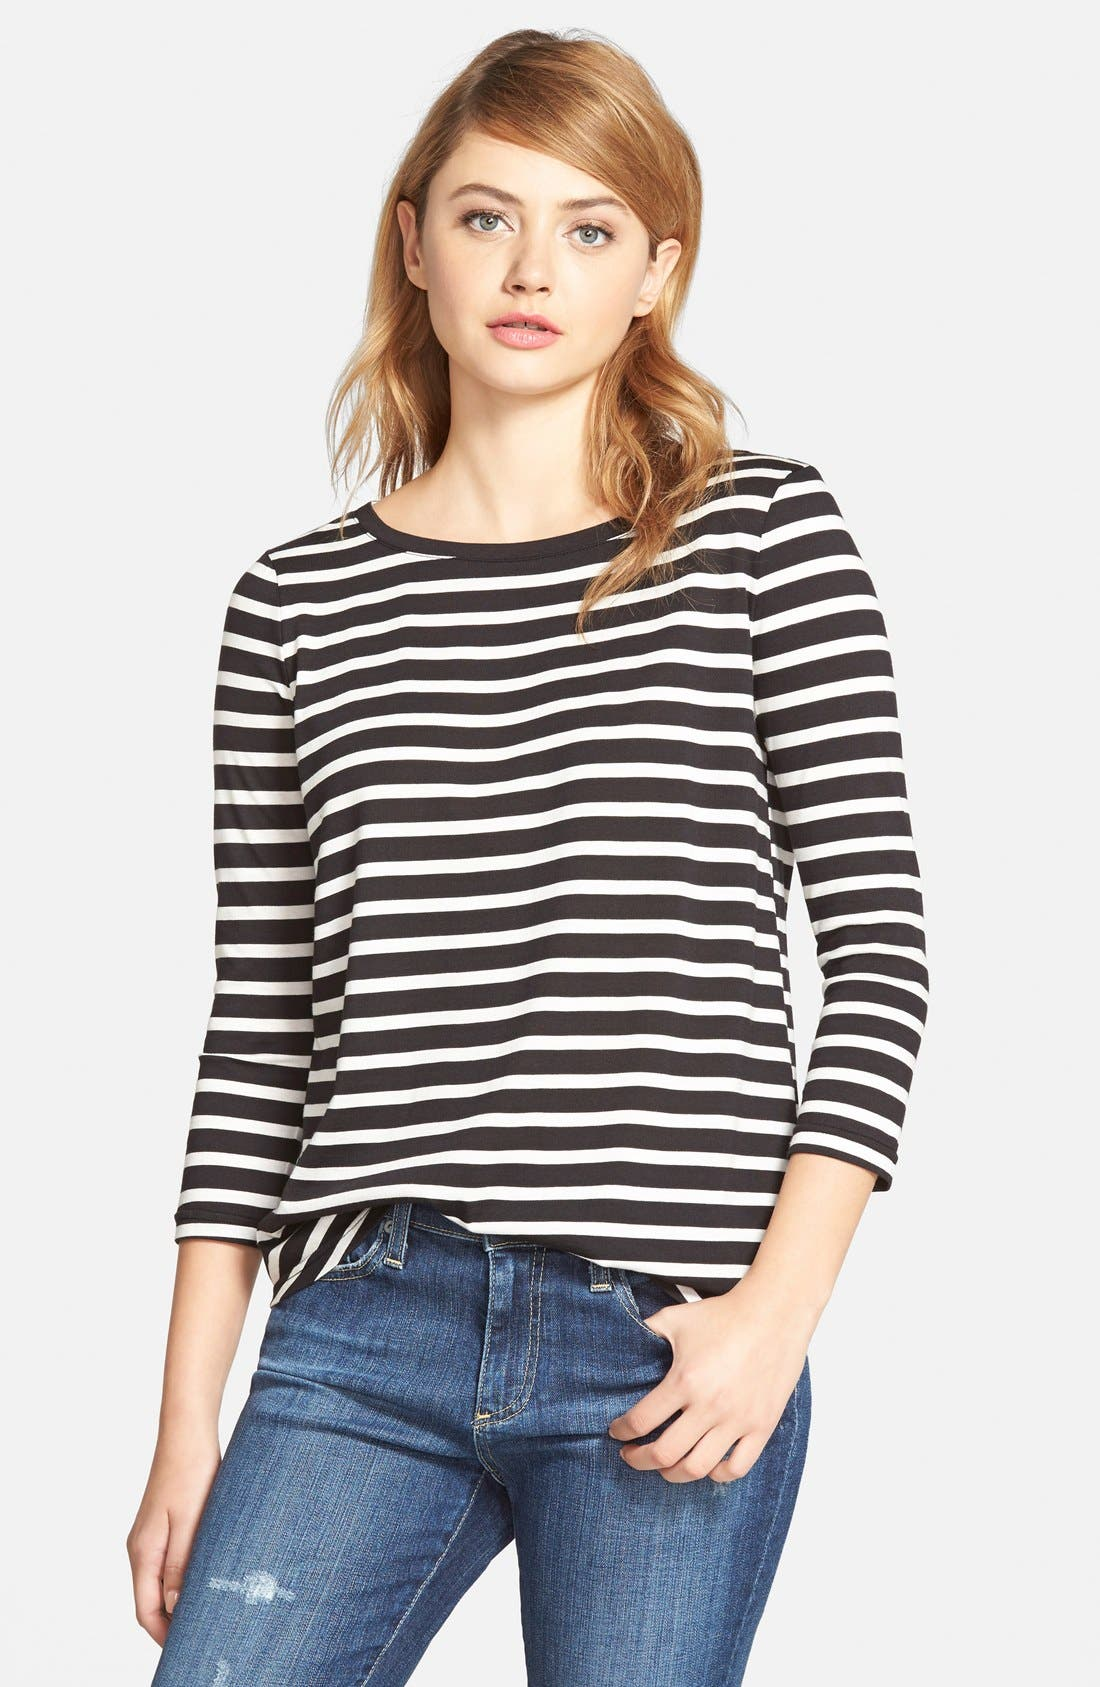 'Mendocino' Stripe Top,                             Main thumbnail 1, color,                             001